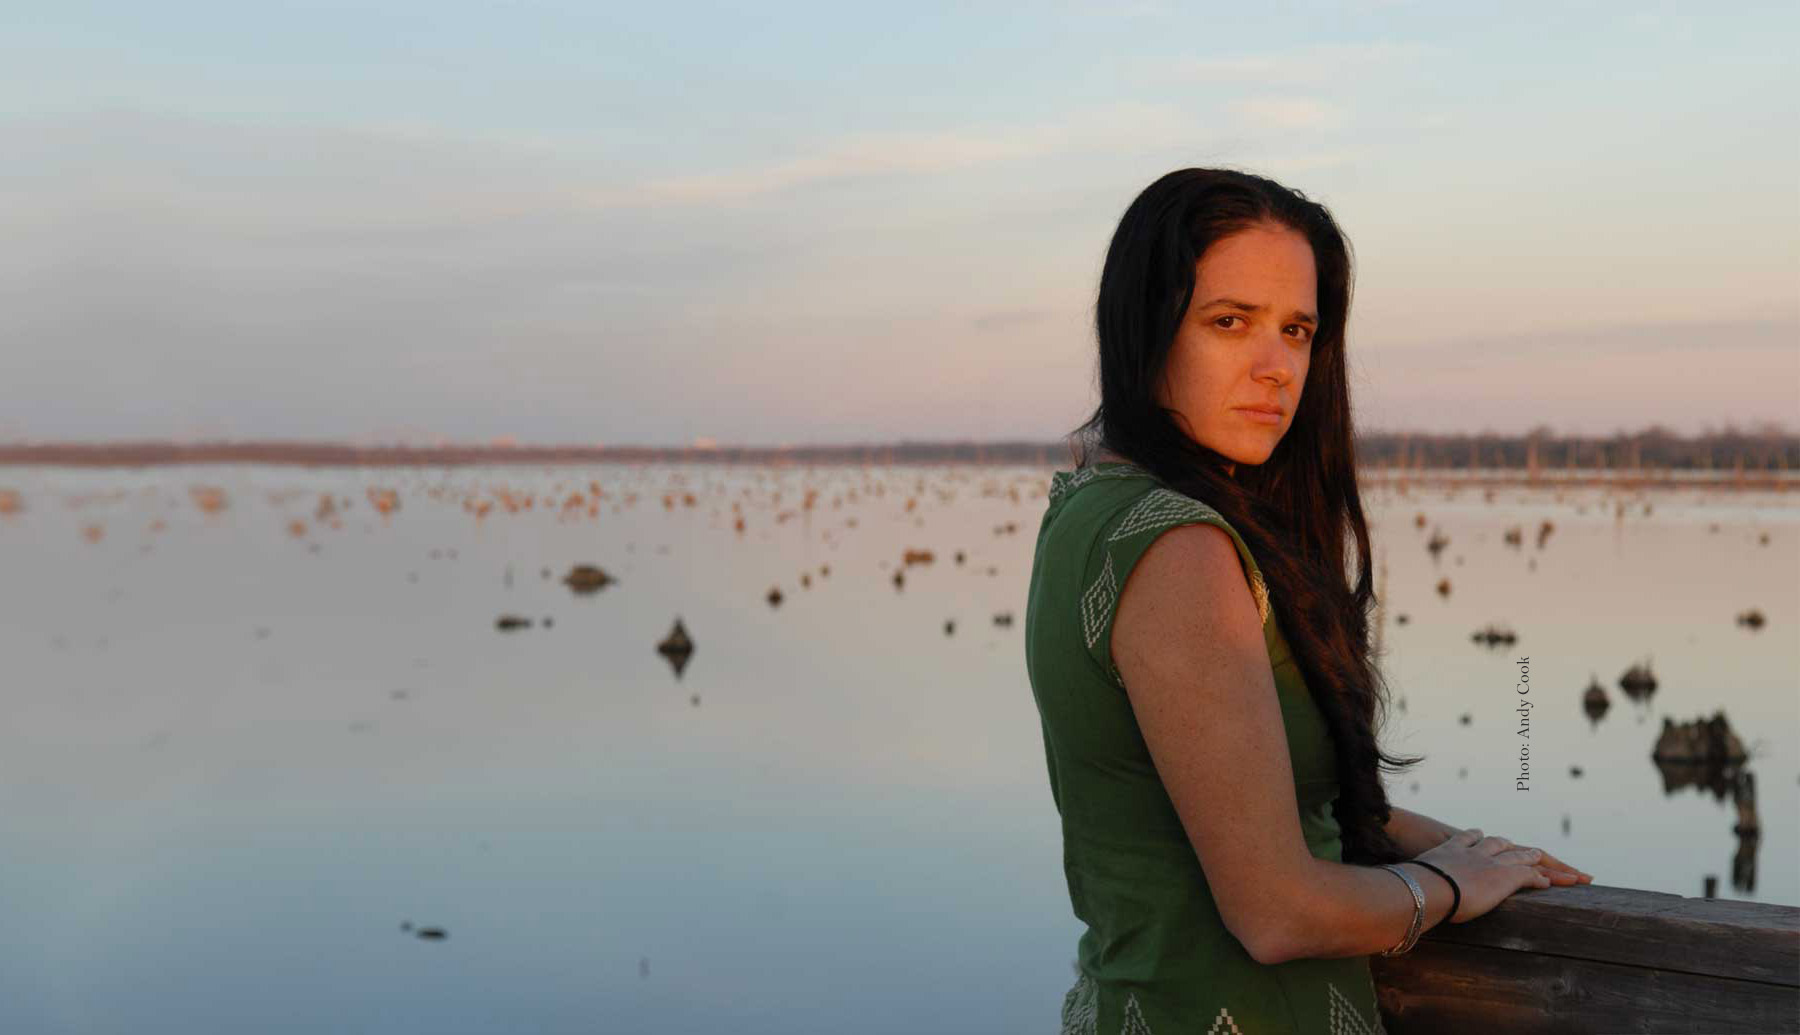 My Louisiana Love - My Louisiana Love follows a young Native American woman, Monique Verdin, as she returns to Southeast Louisiana to reunite with her Houma Indian family. But soon she sees that her people's traditional way of life- fishing, trapping, and hunting these fragile wetlands– is threatened by a cycle of man-made environmental crises.